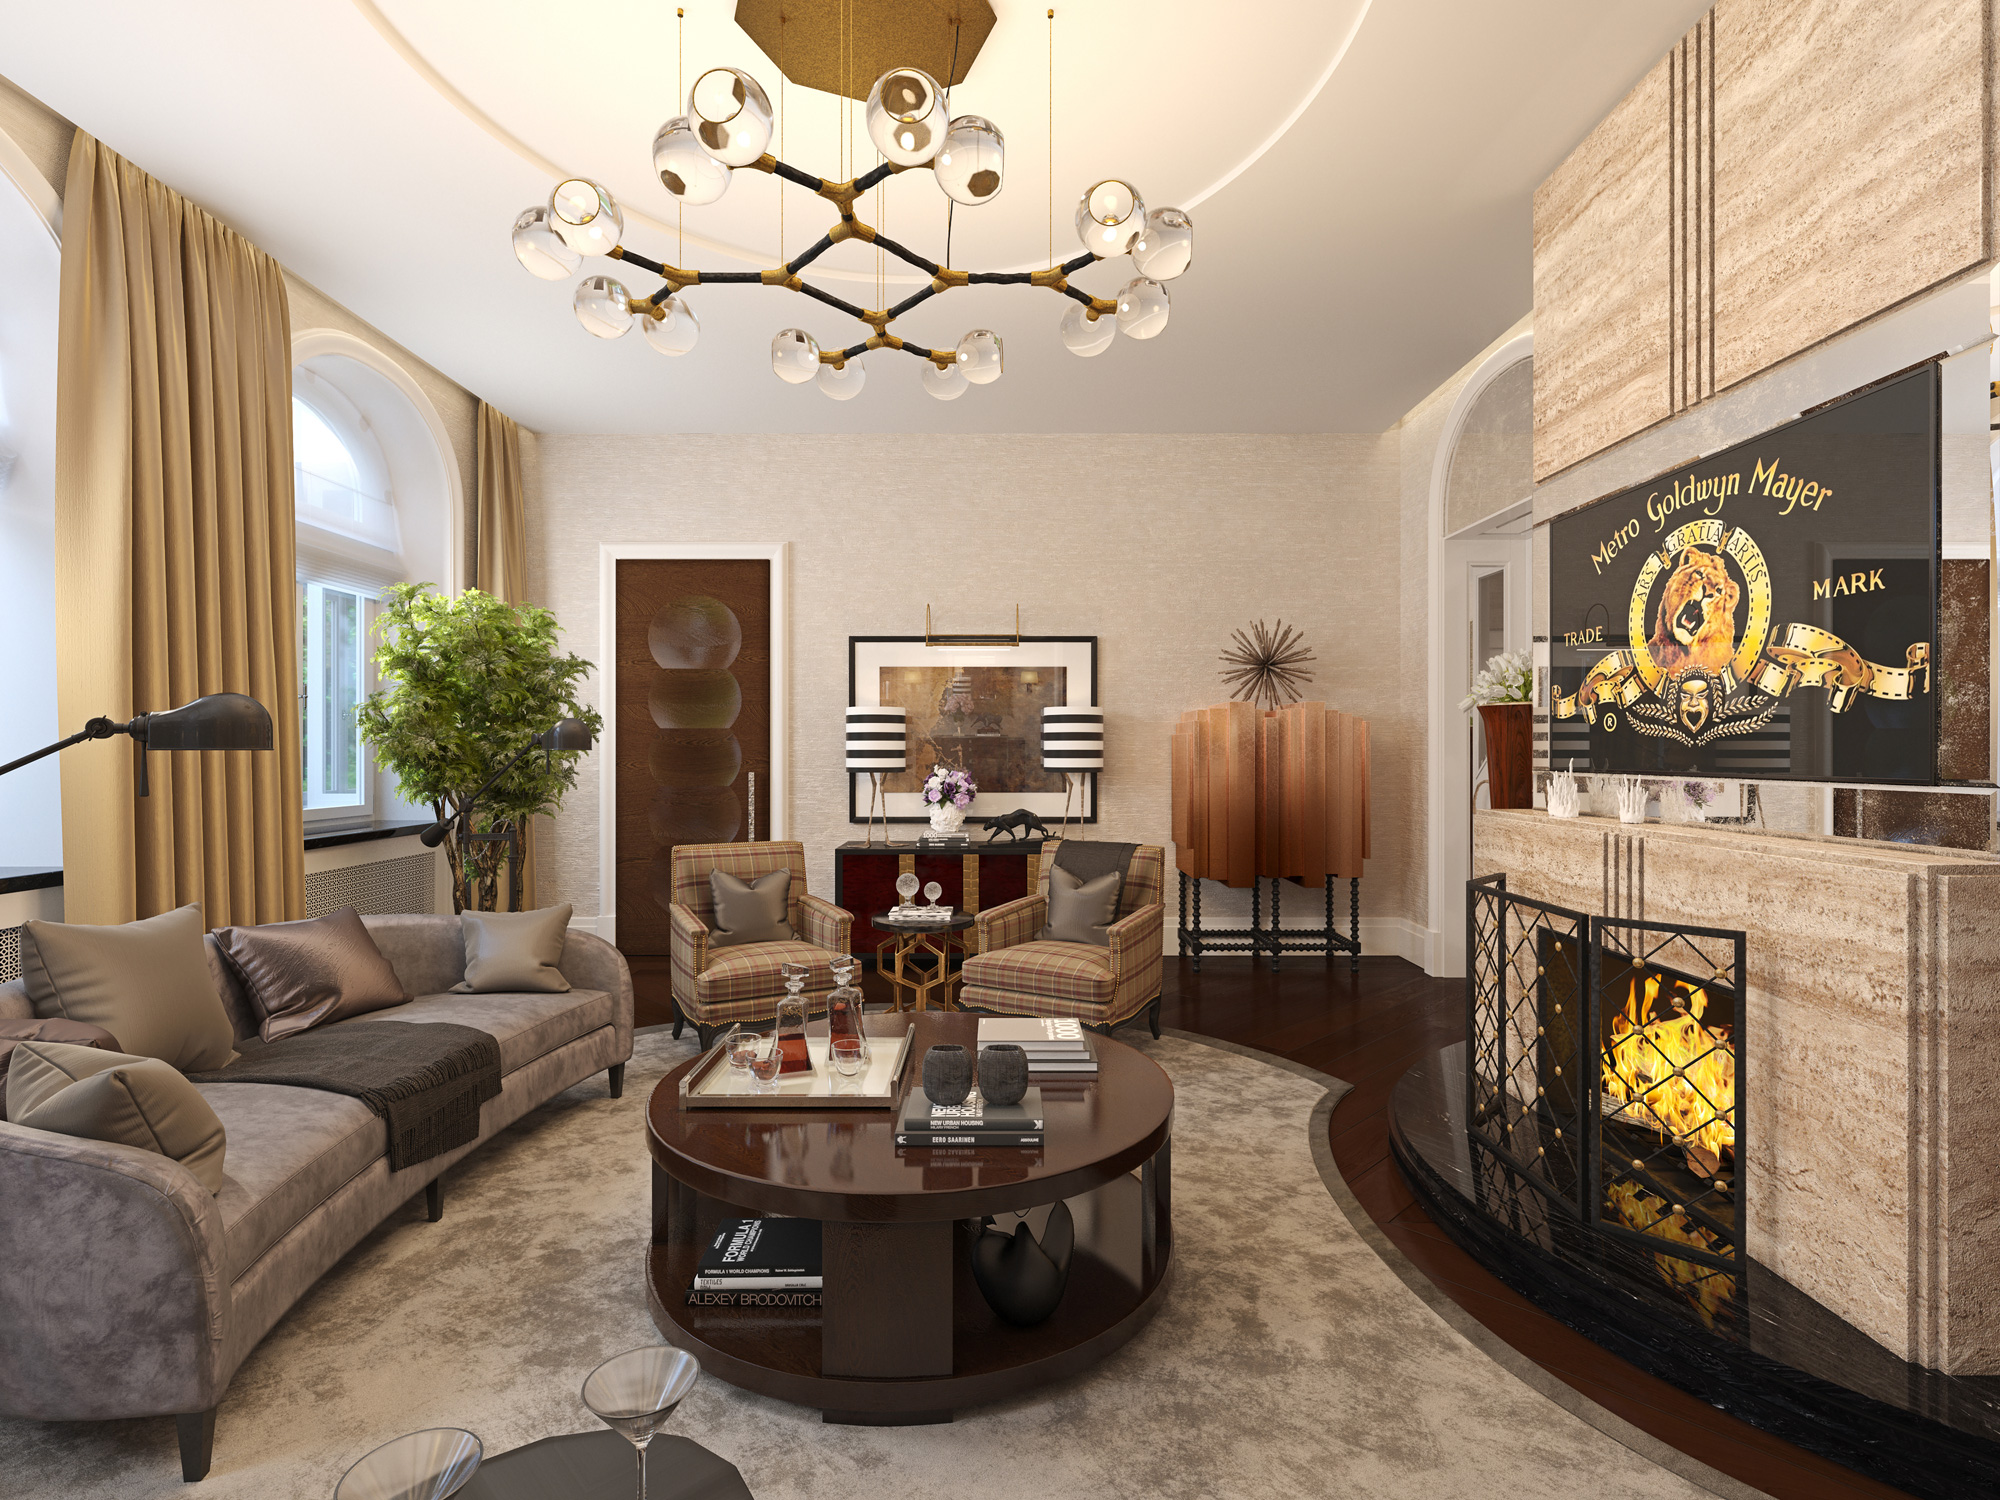 6 luxury living room ideas with incredible lighting Luxury small living room